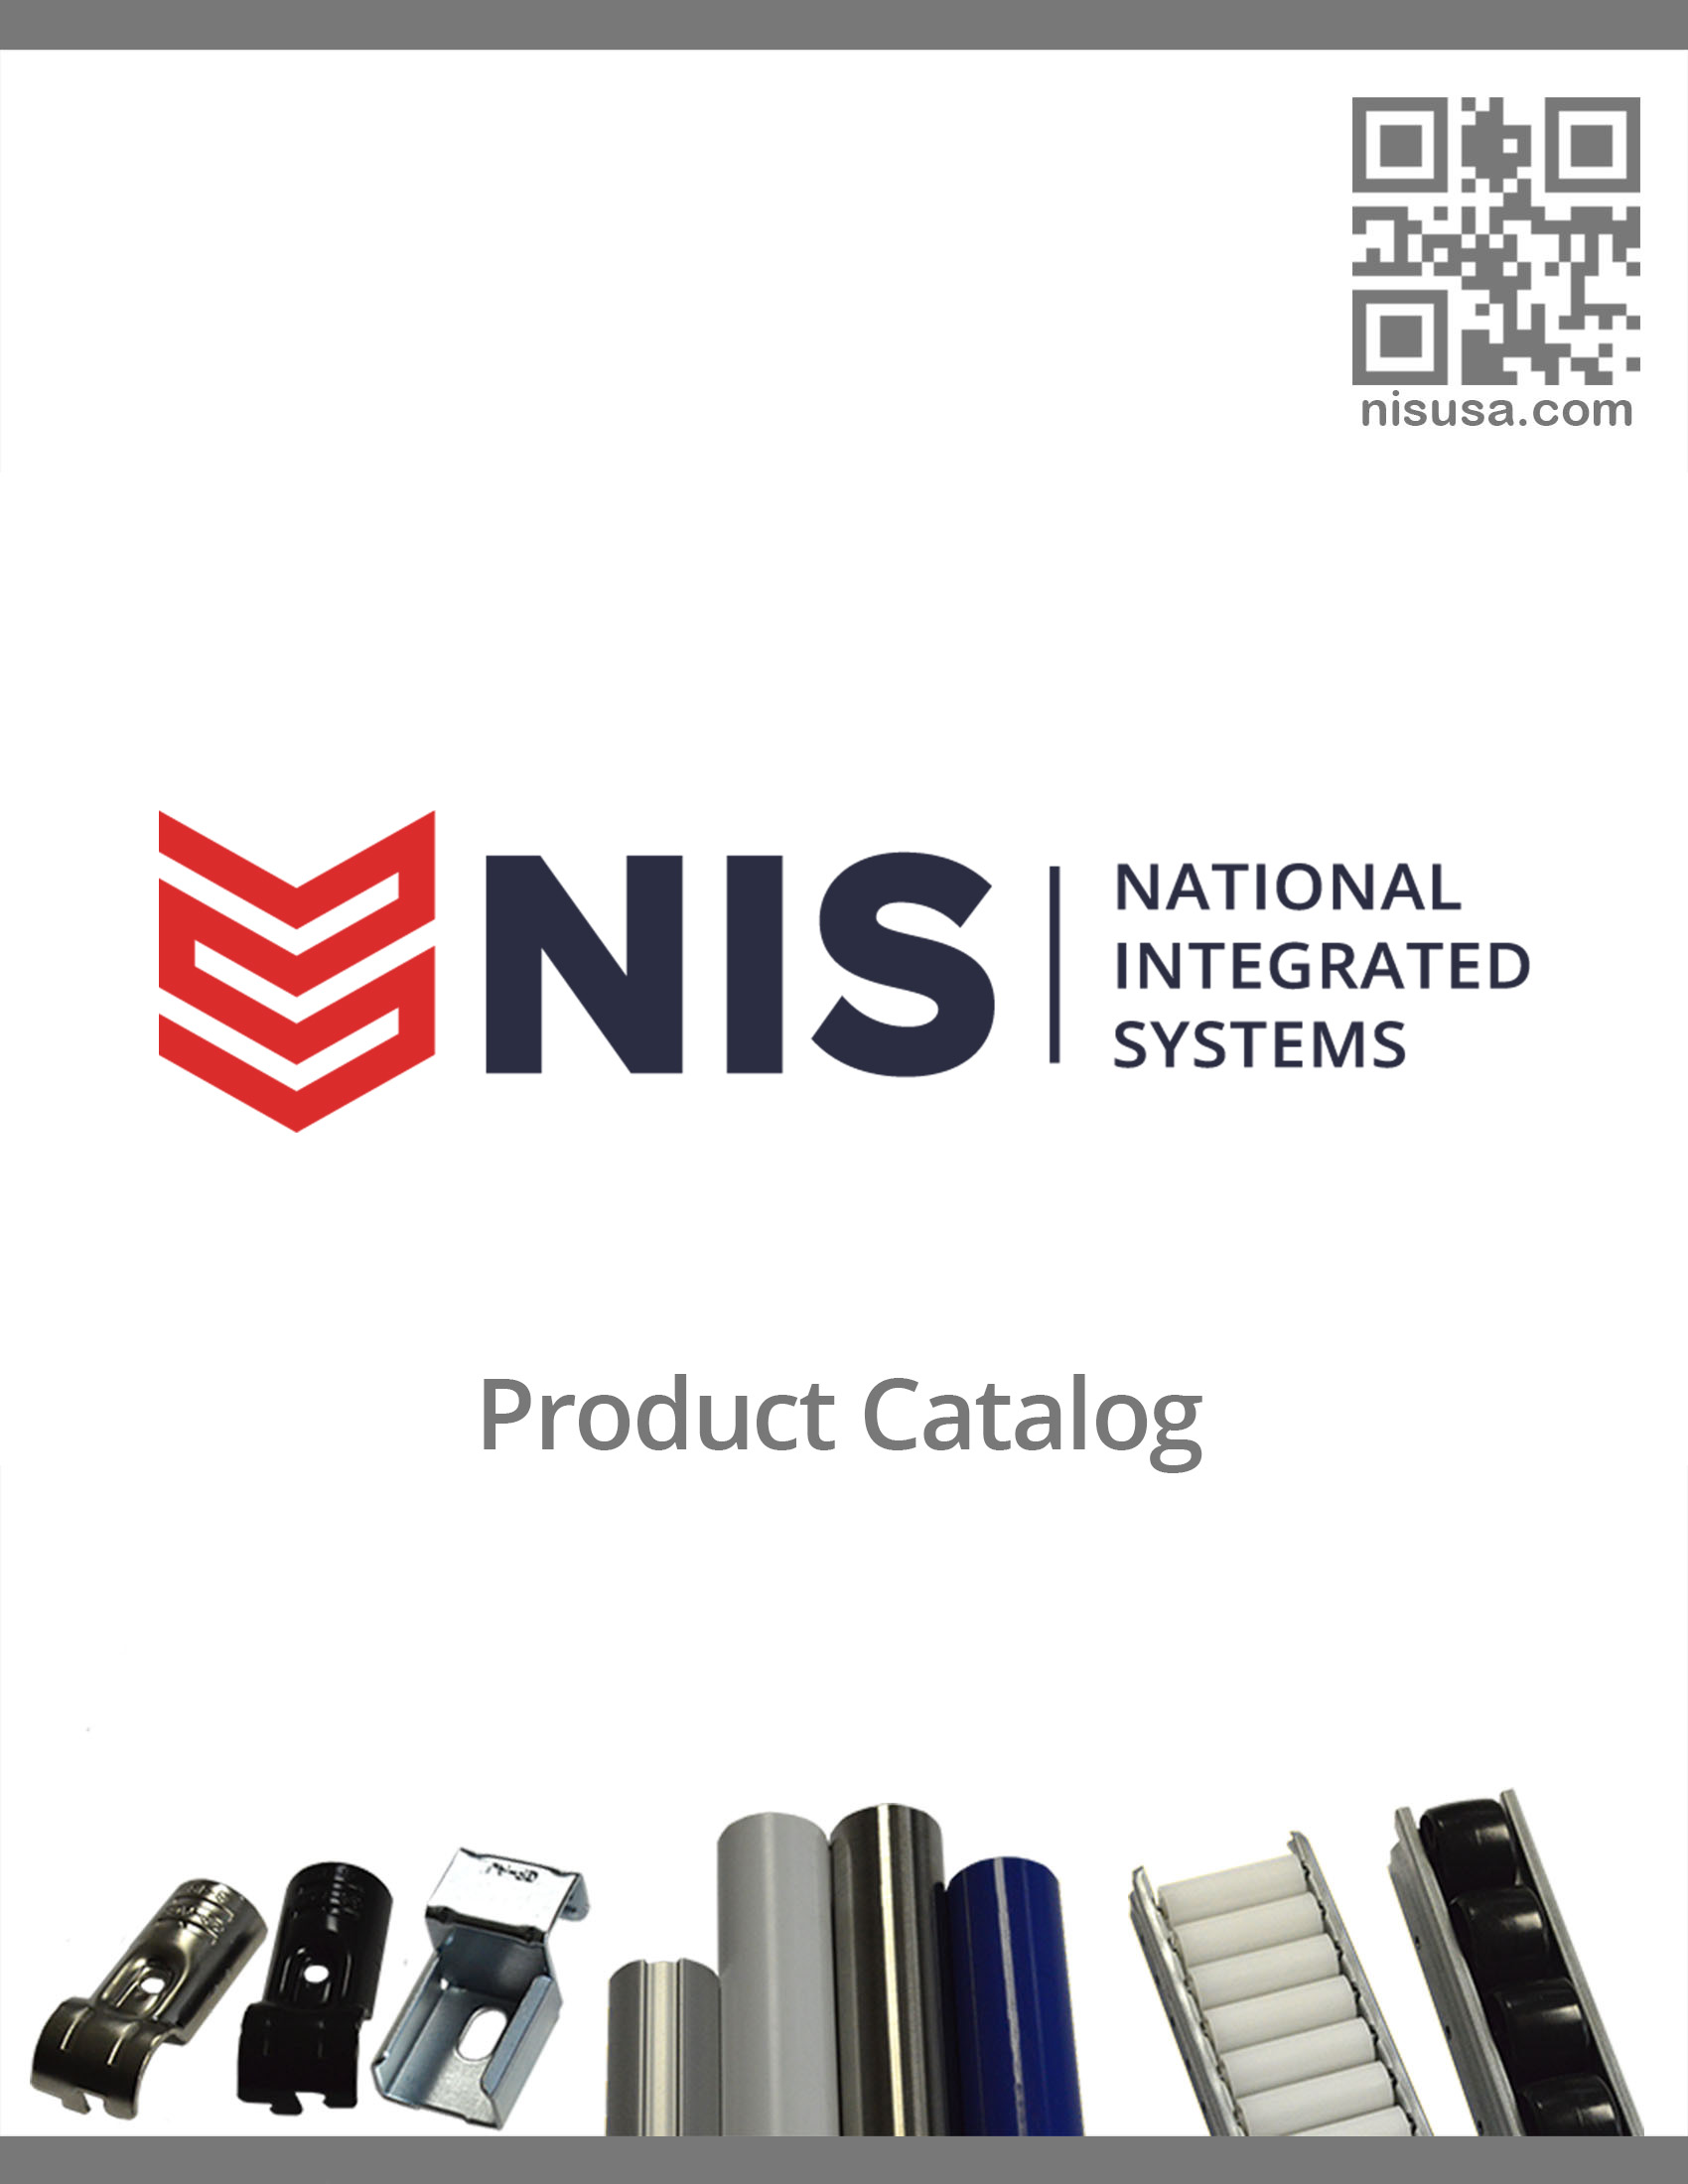 National Integrated Systems